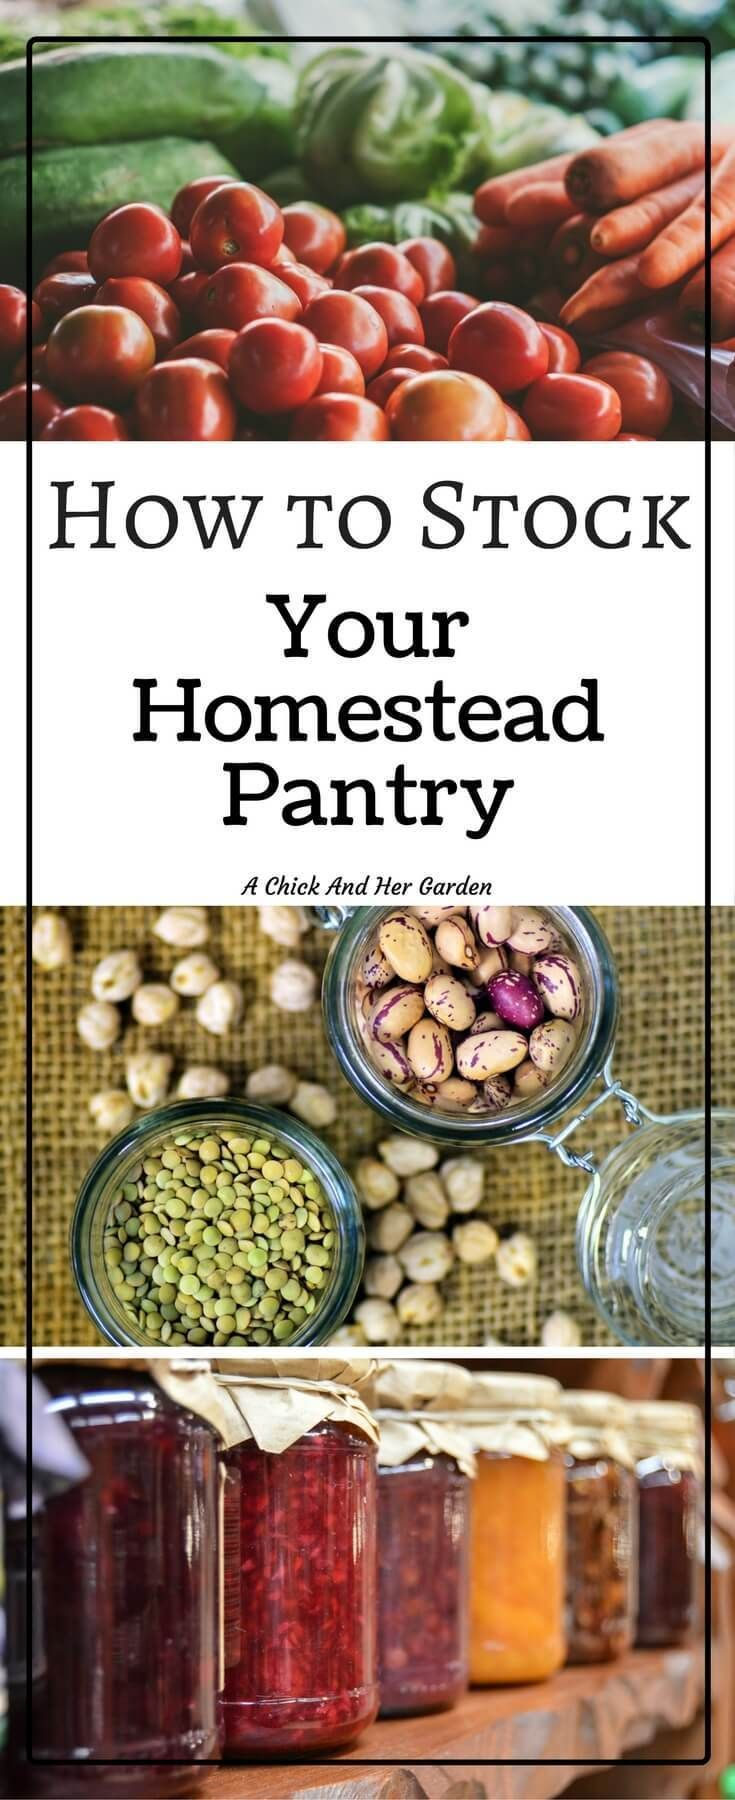 All families are unique, which makes all pantries unique. Follow these steps to make a pantry that fits your homestead! Learn how to stock YOUR homestead pantry!